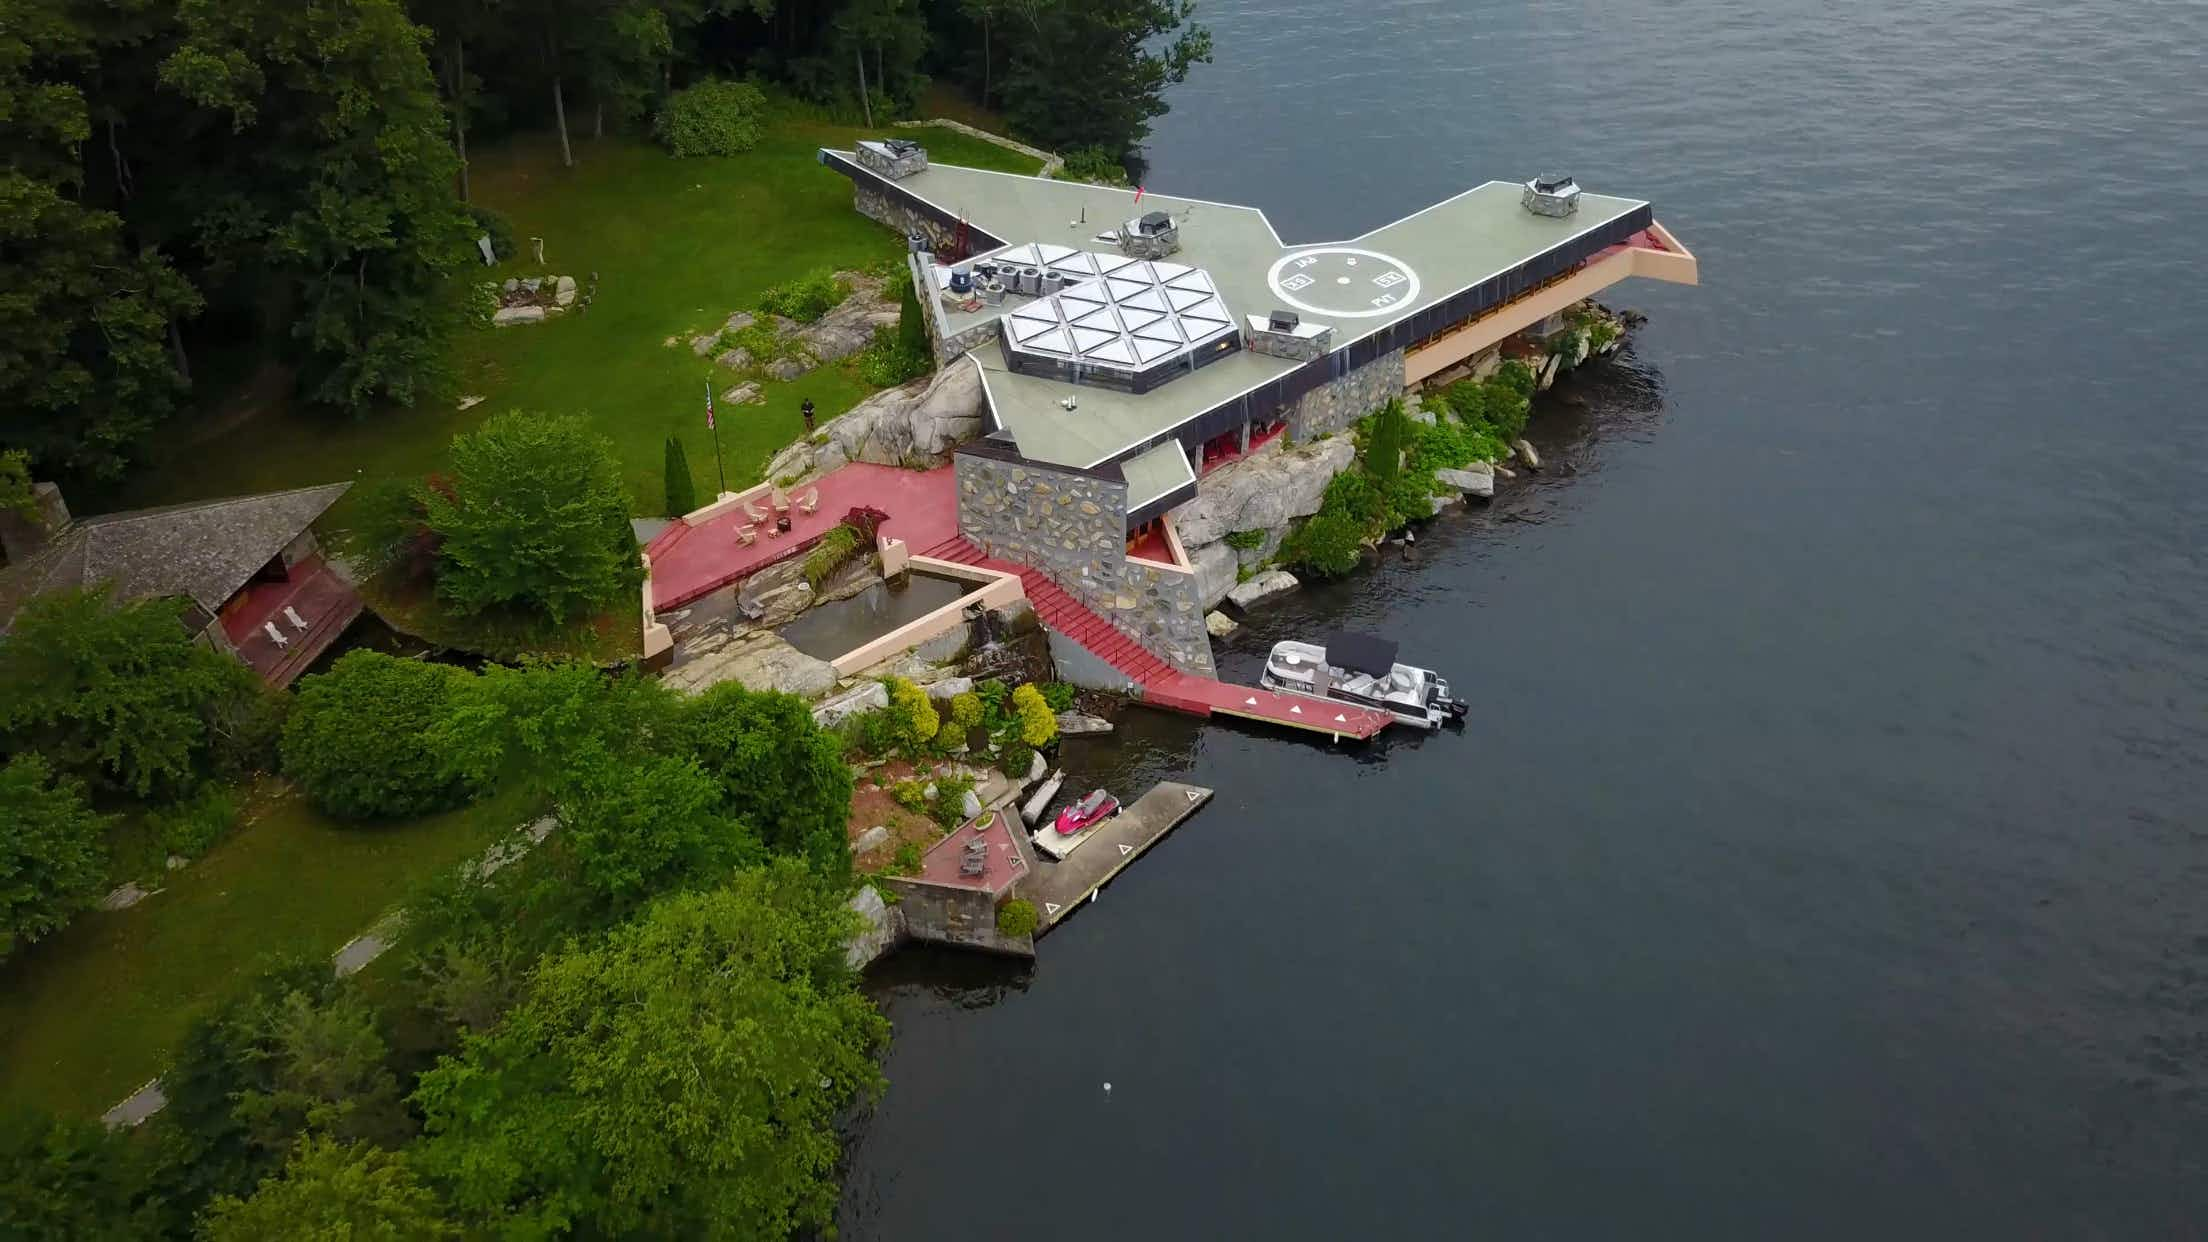 Own this private island with a Frank Lloyd Wright-designed home for just $15m